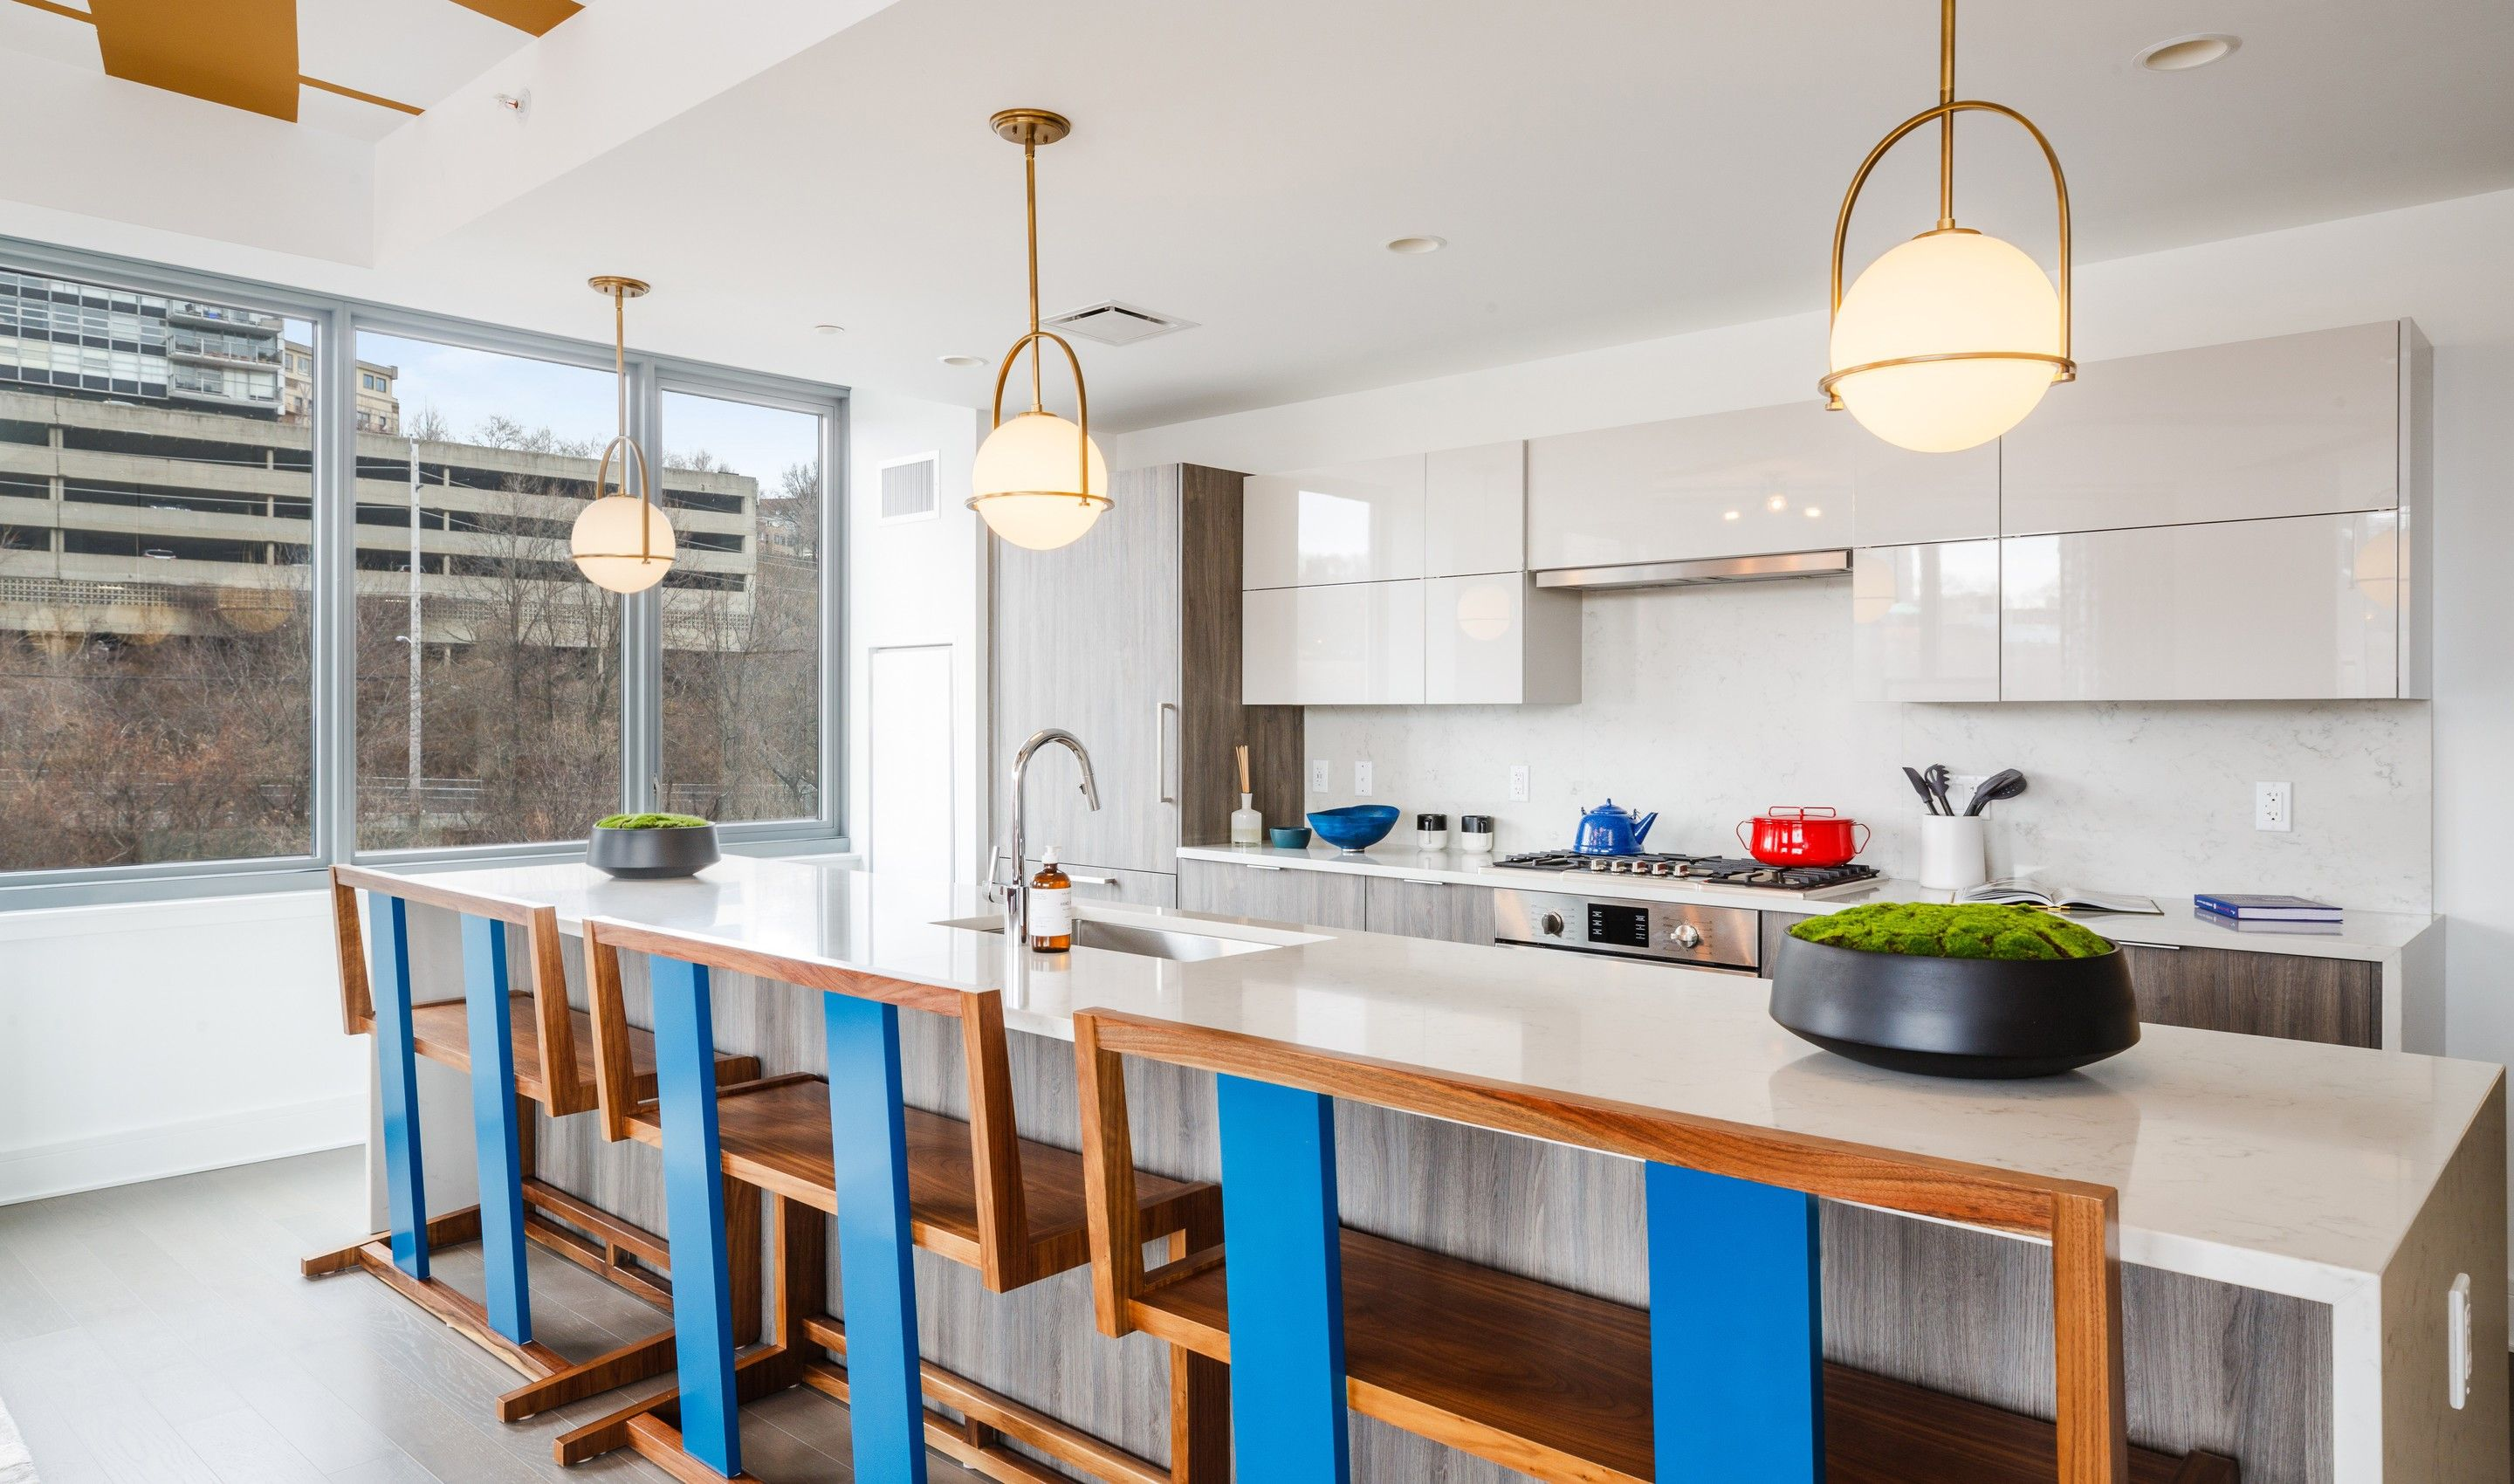 Kitchen featured in the C5 By K. Hovnanian® Homes in Hudson County, NJ